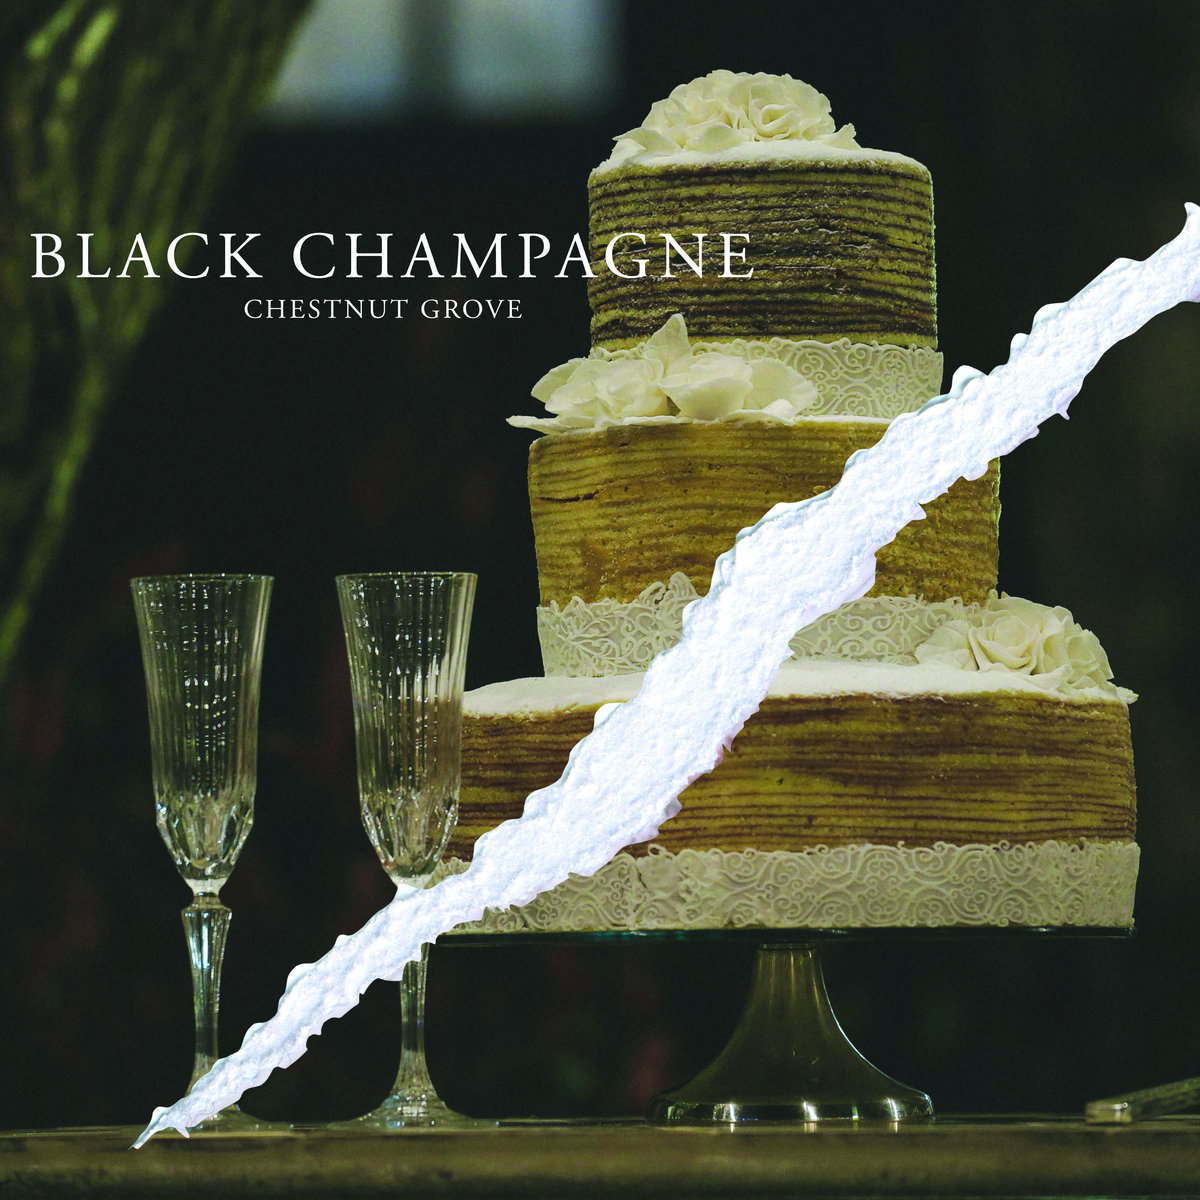 Black Champagne - Chestnut Grove